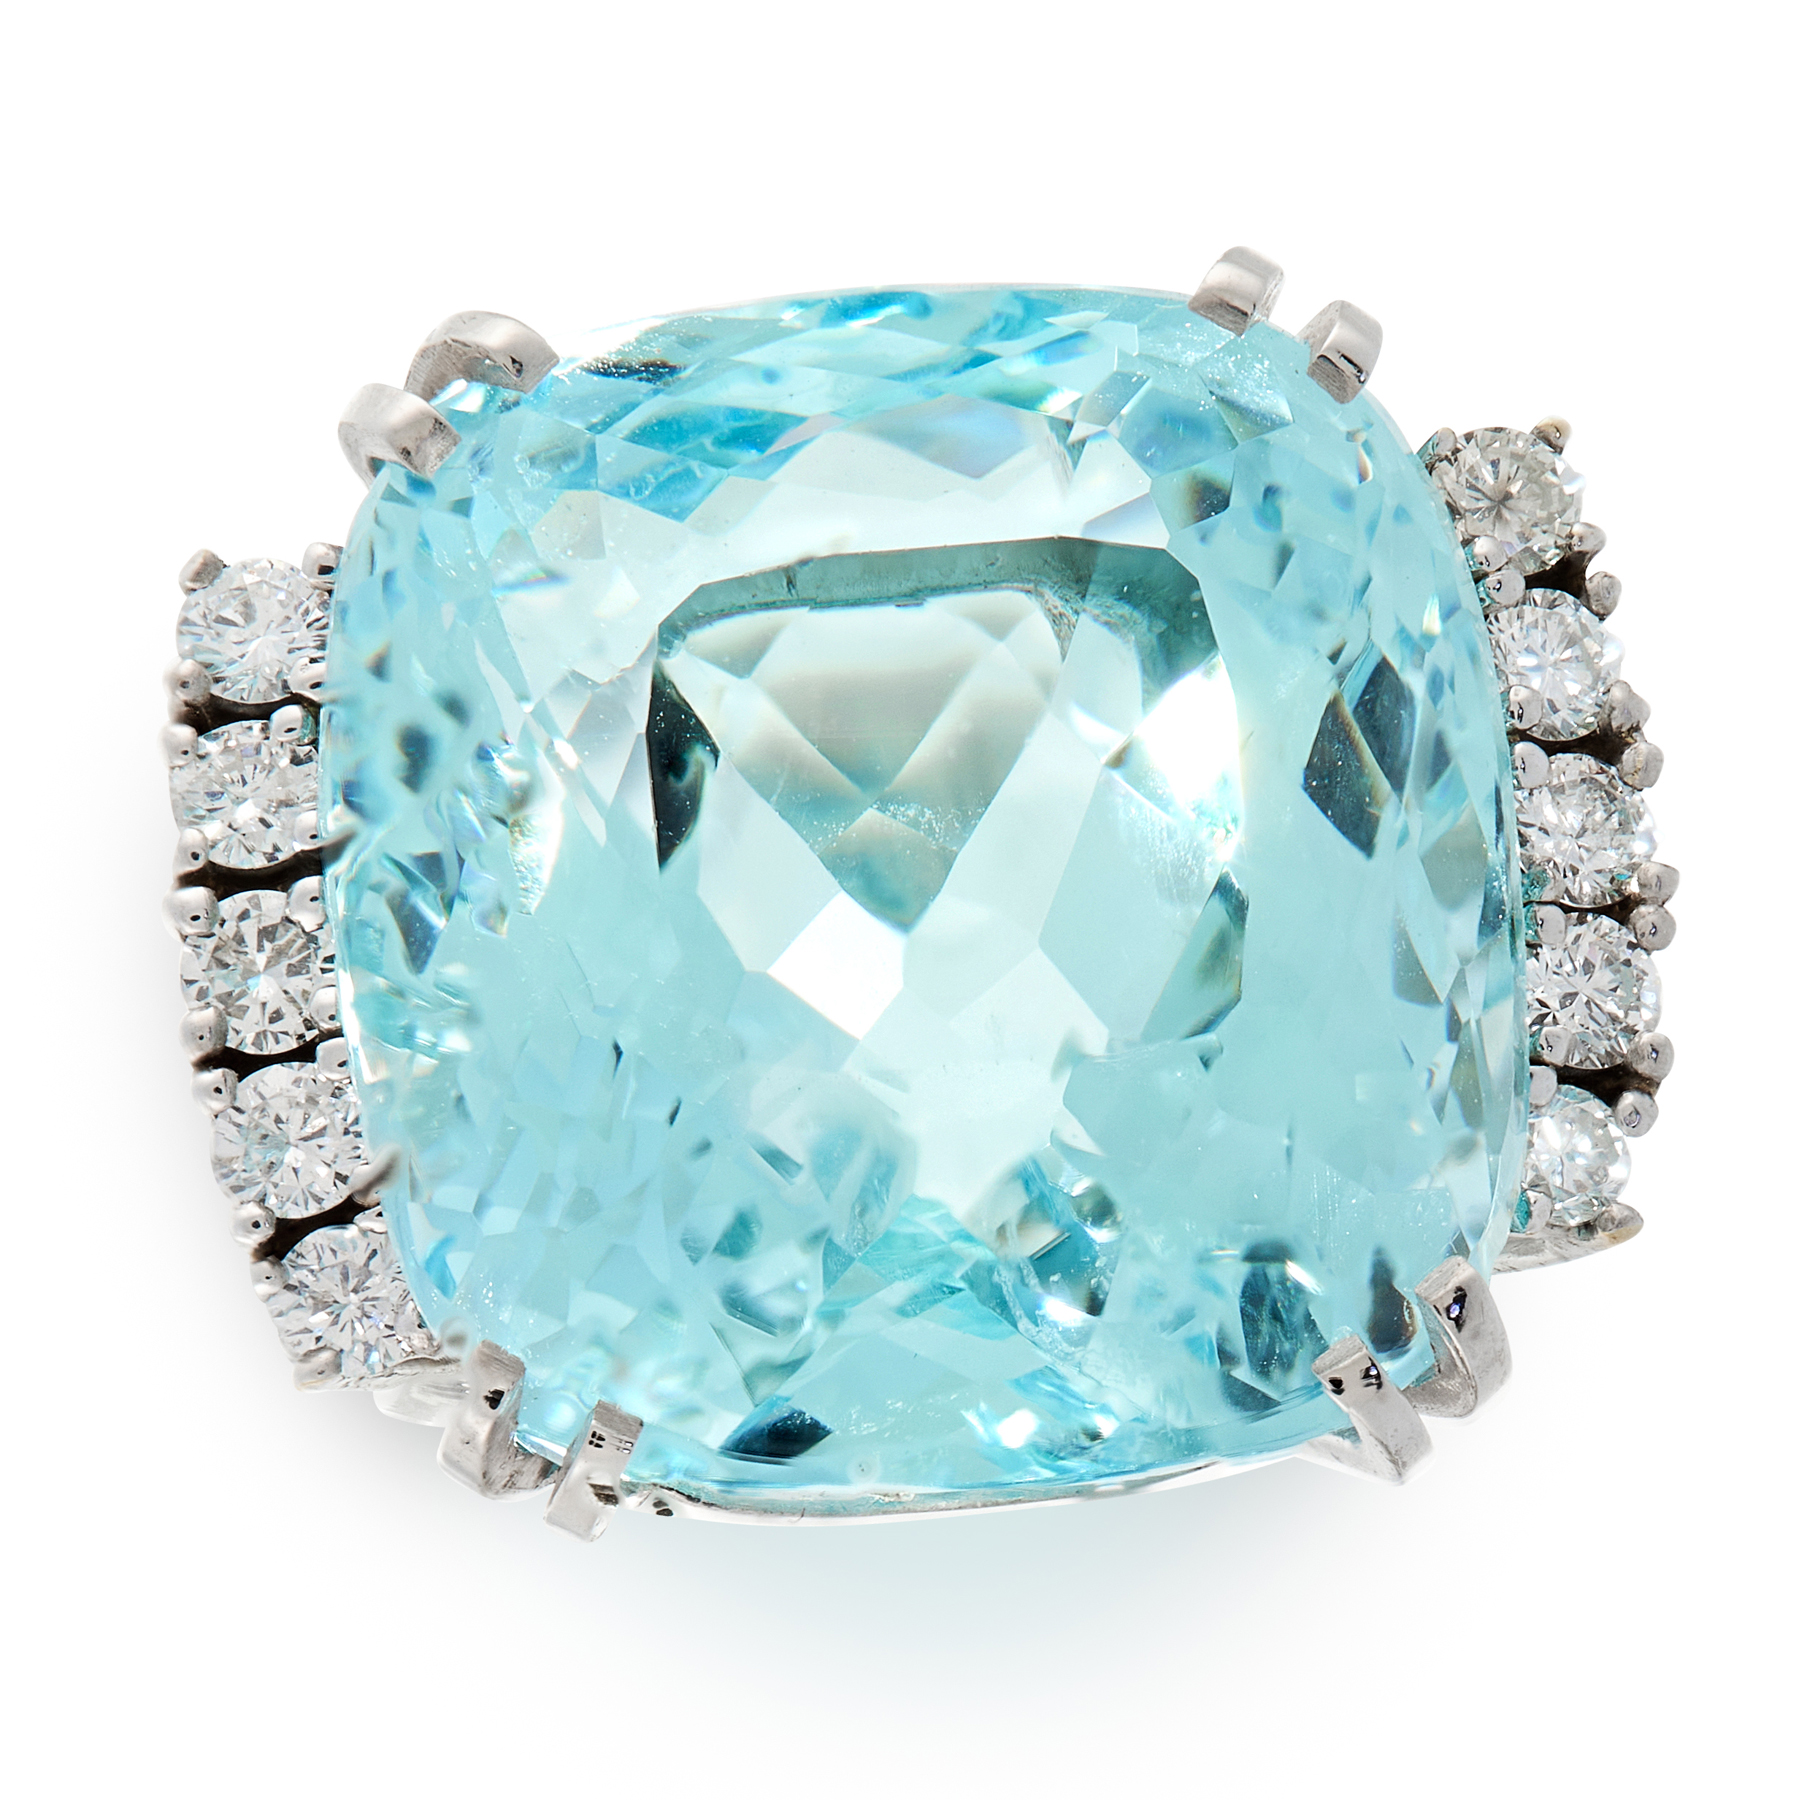 AN AQUAMARINE AND DIAMOND DRESS RING set with a cushion cut aquamarine of 27.76 carats, between rows